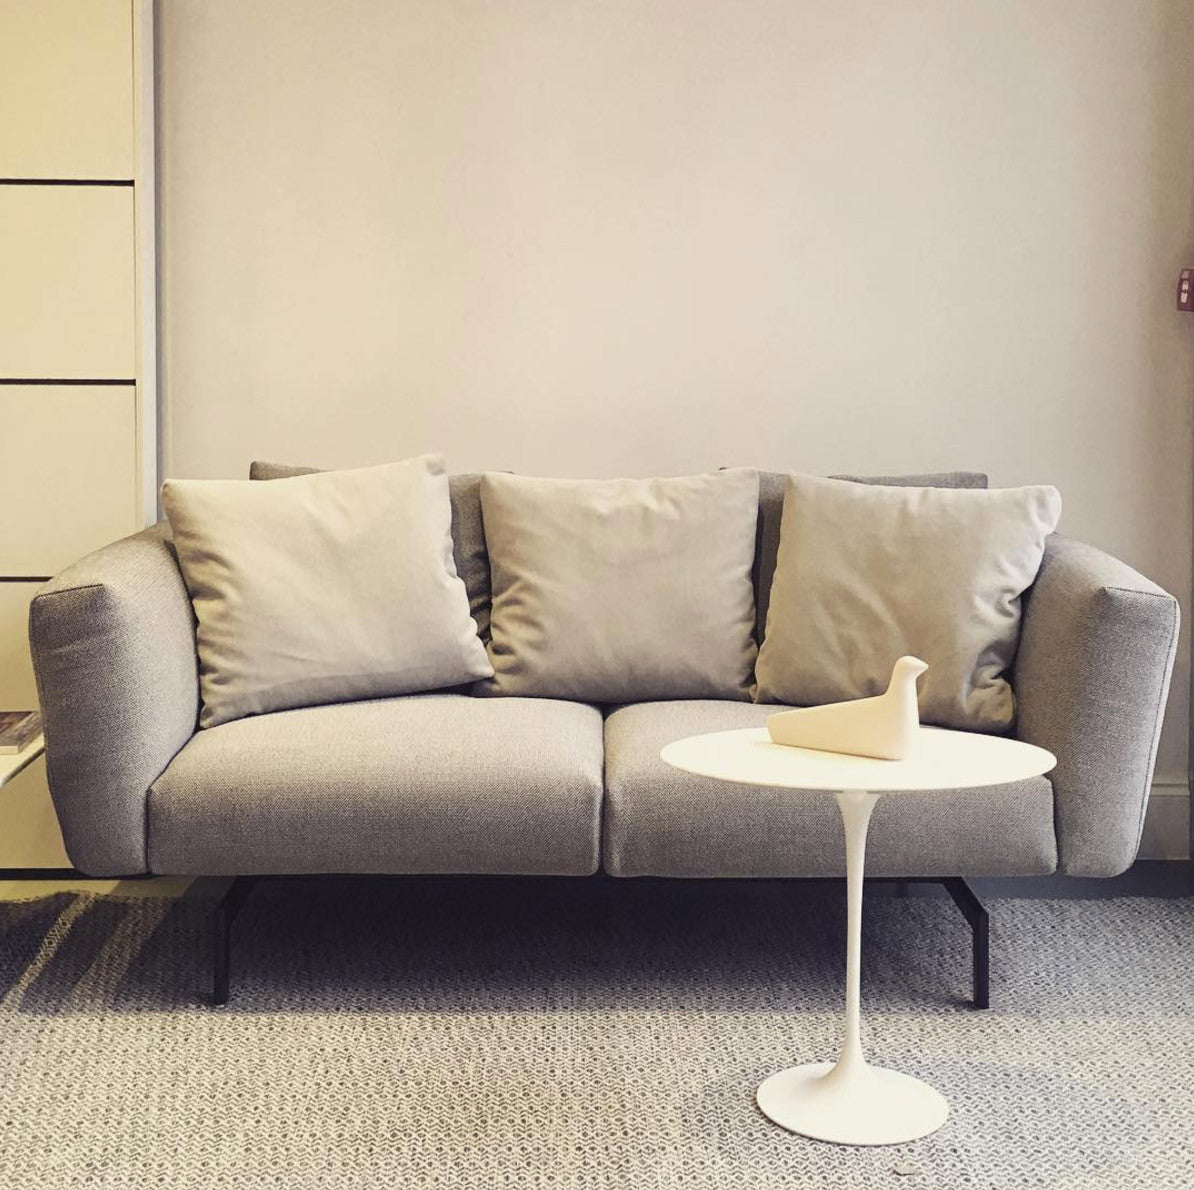 Avio Sofa, 2-seater